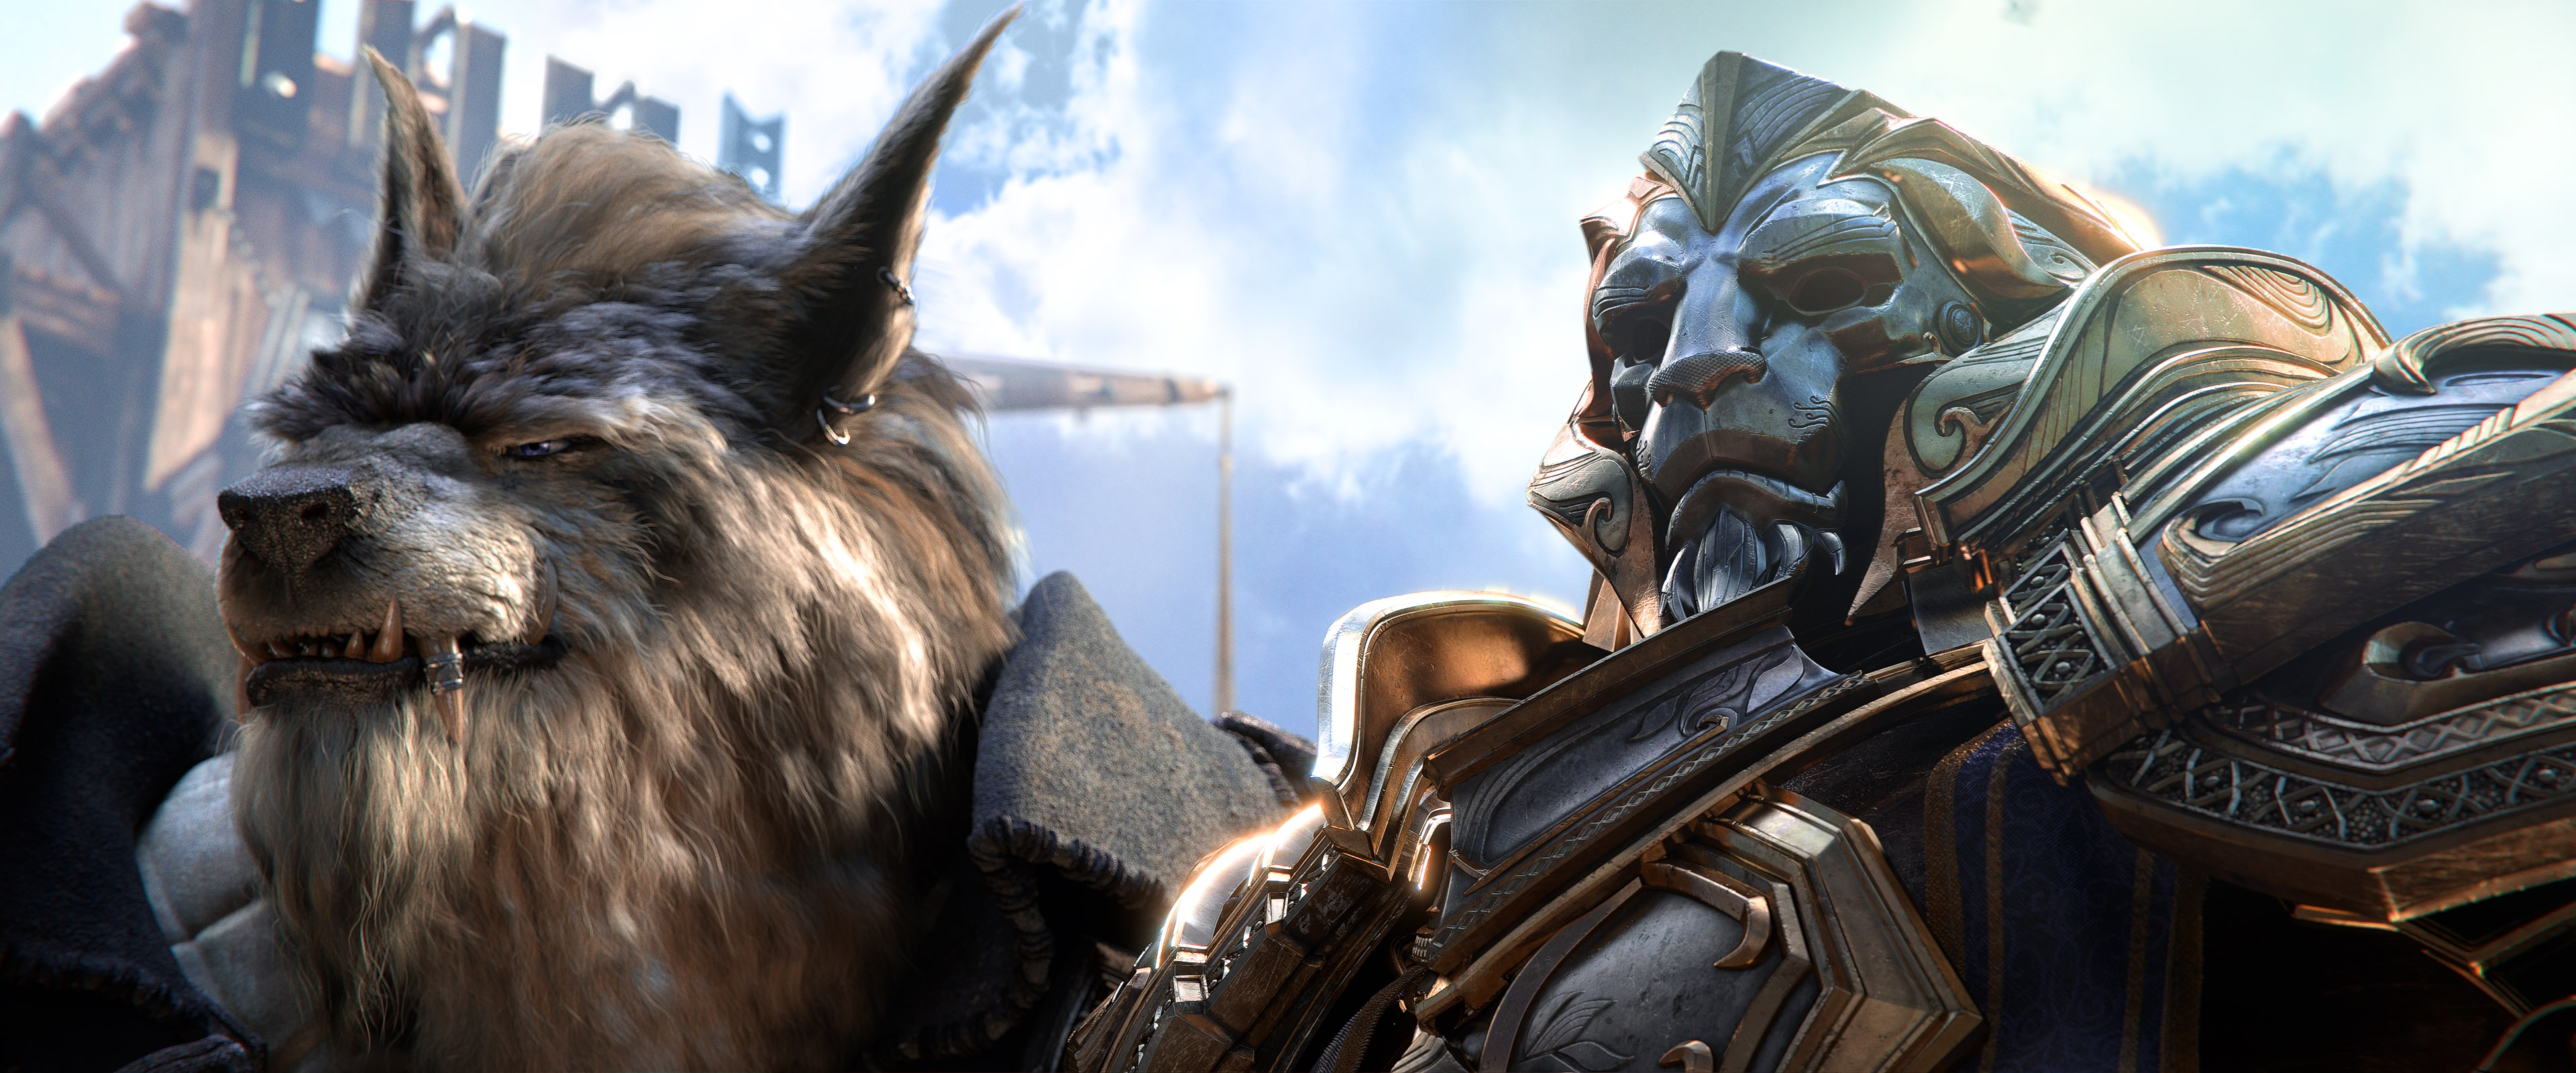 WoW_Battle_for_Azeroth_Greymane_and_Anduin_tif_jpgcopy